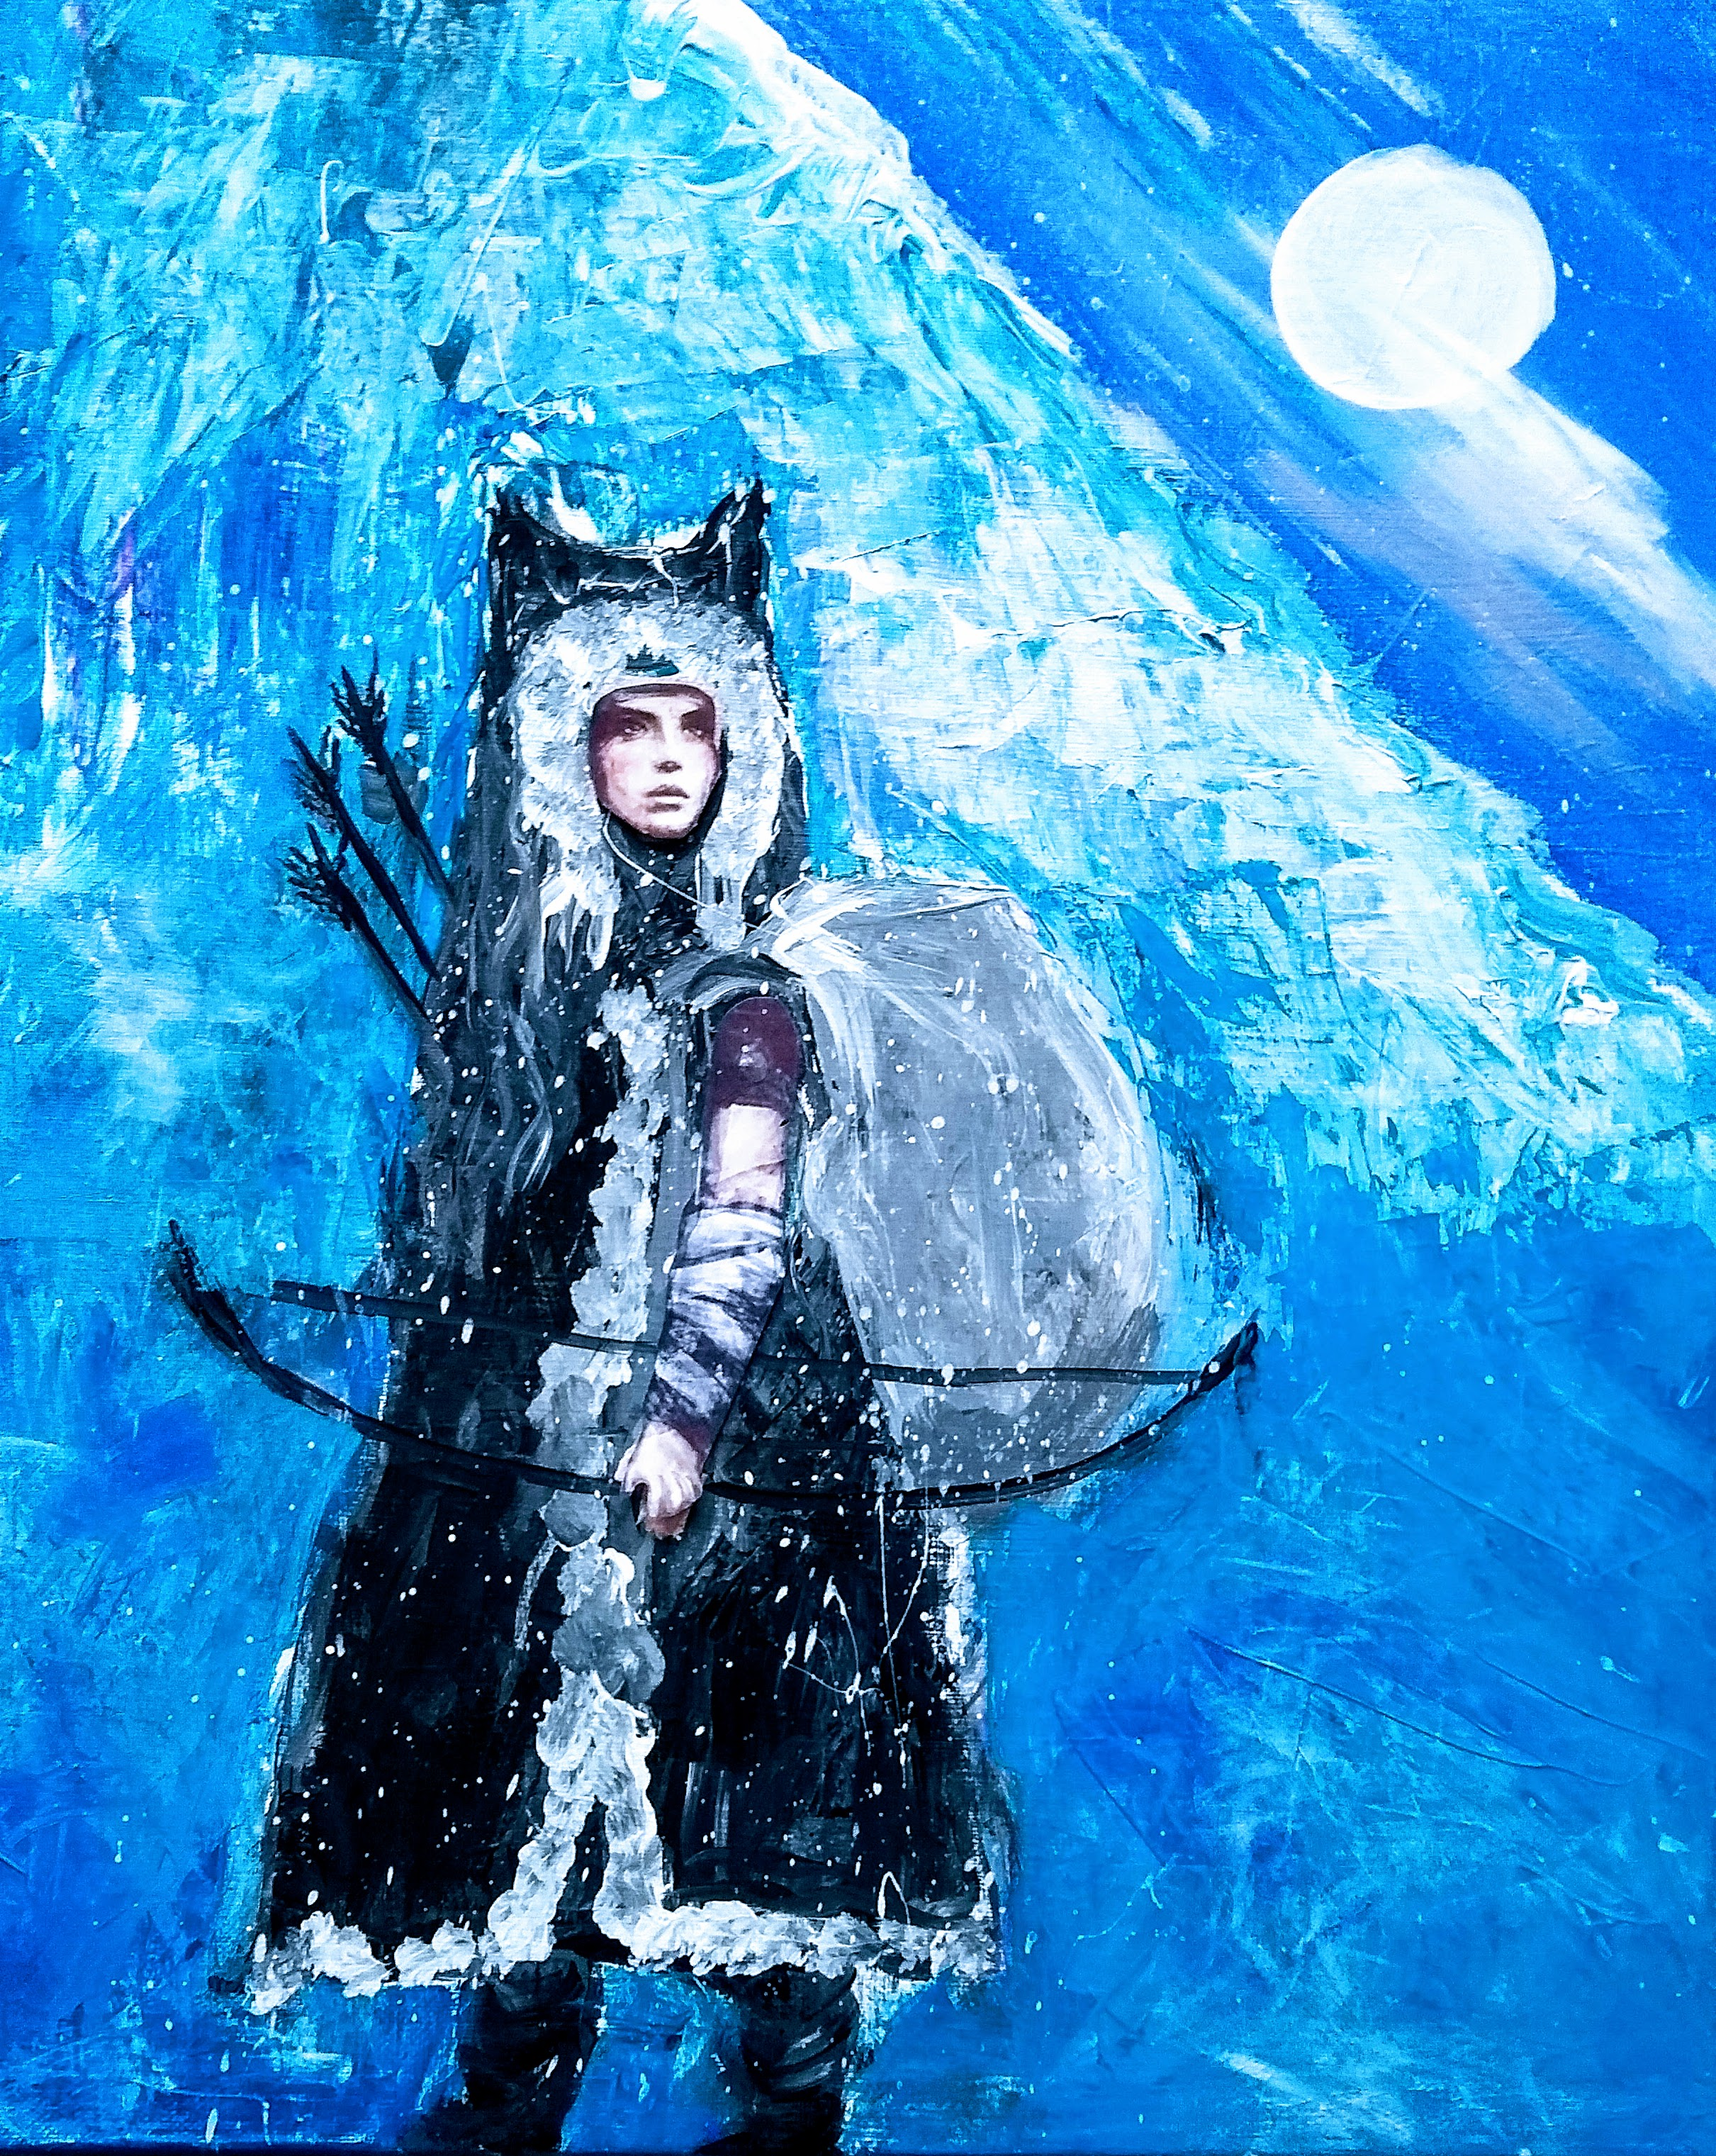 Goddess of Winter